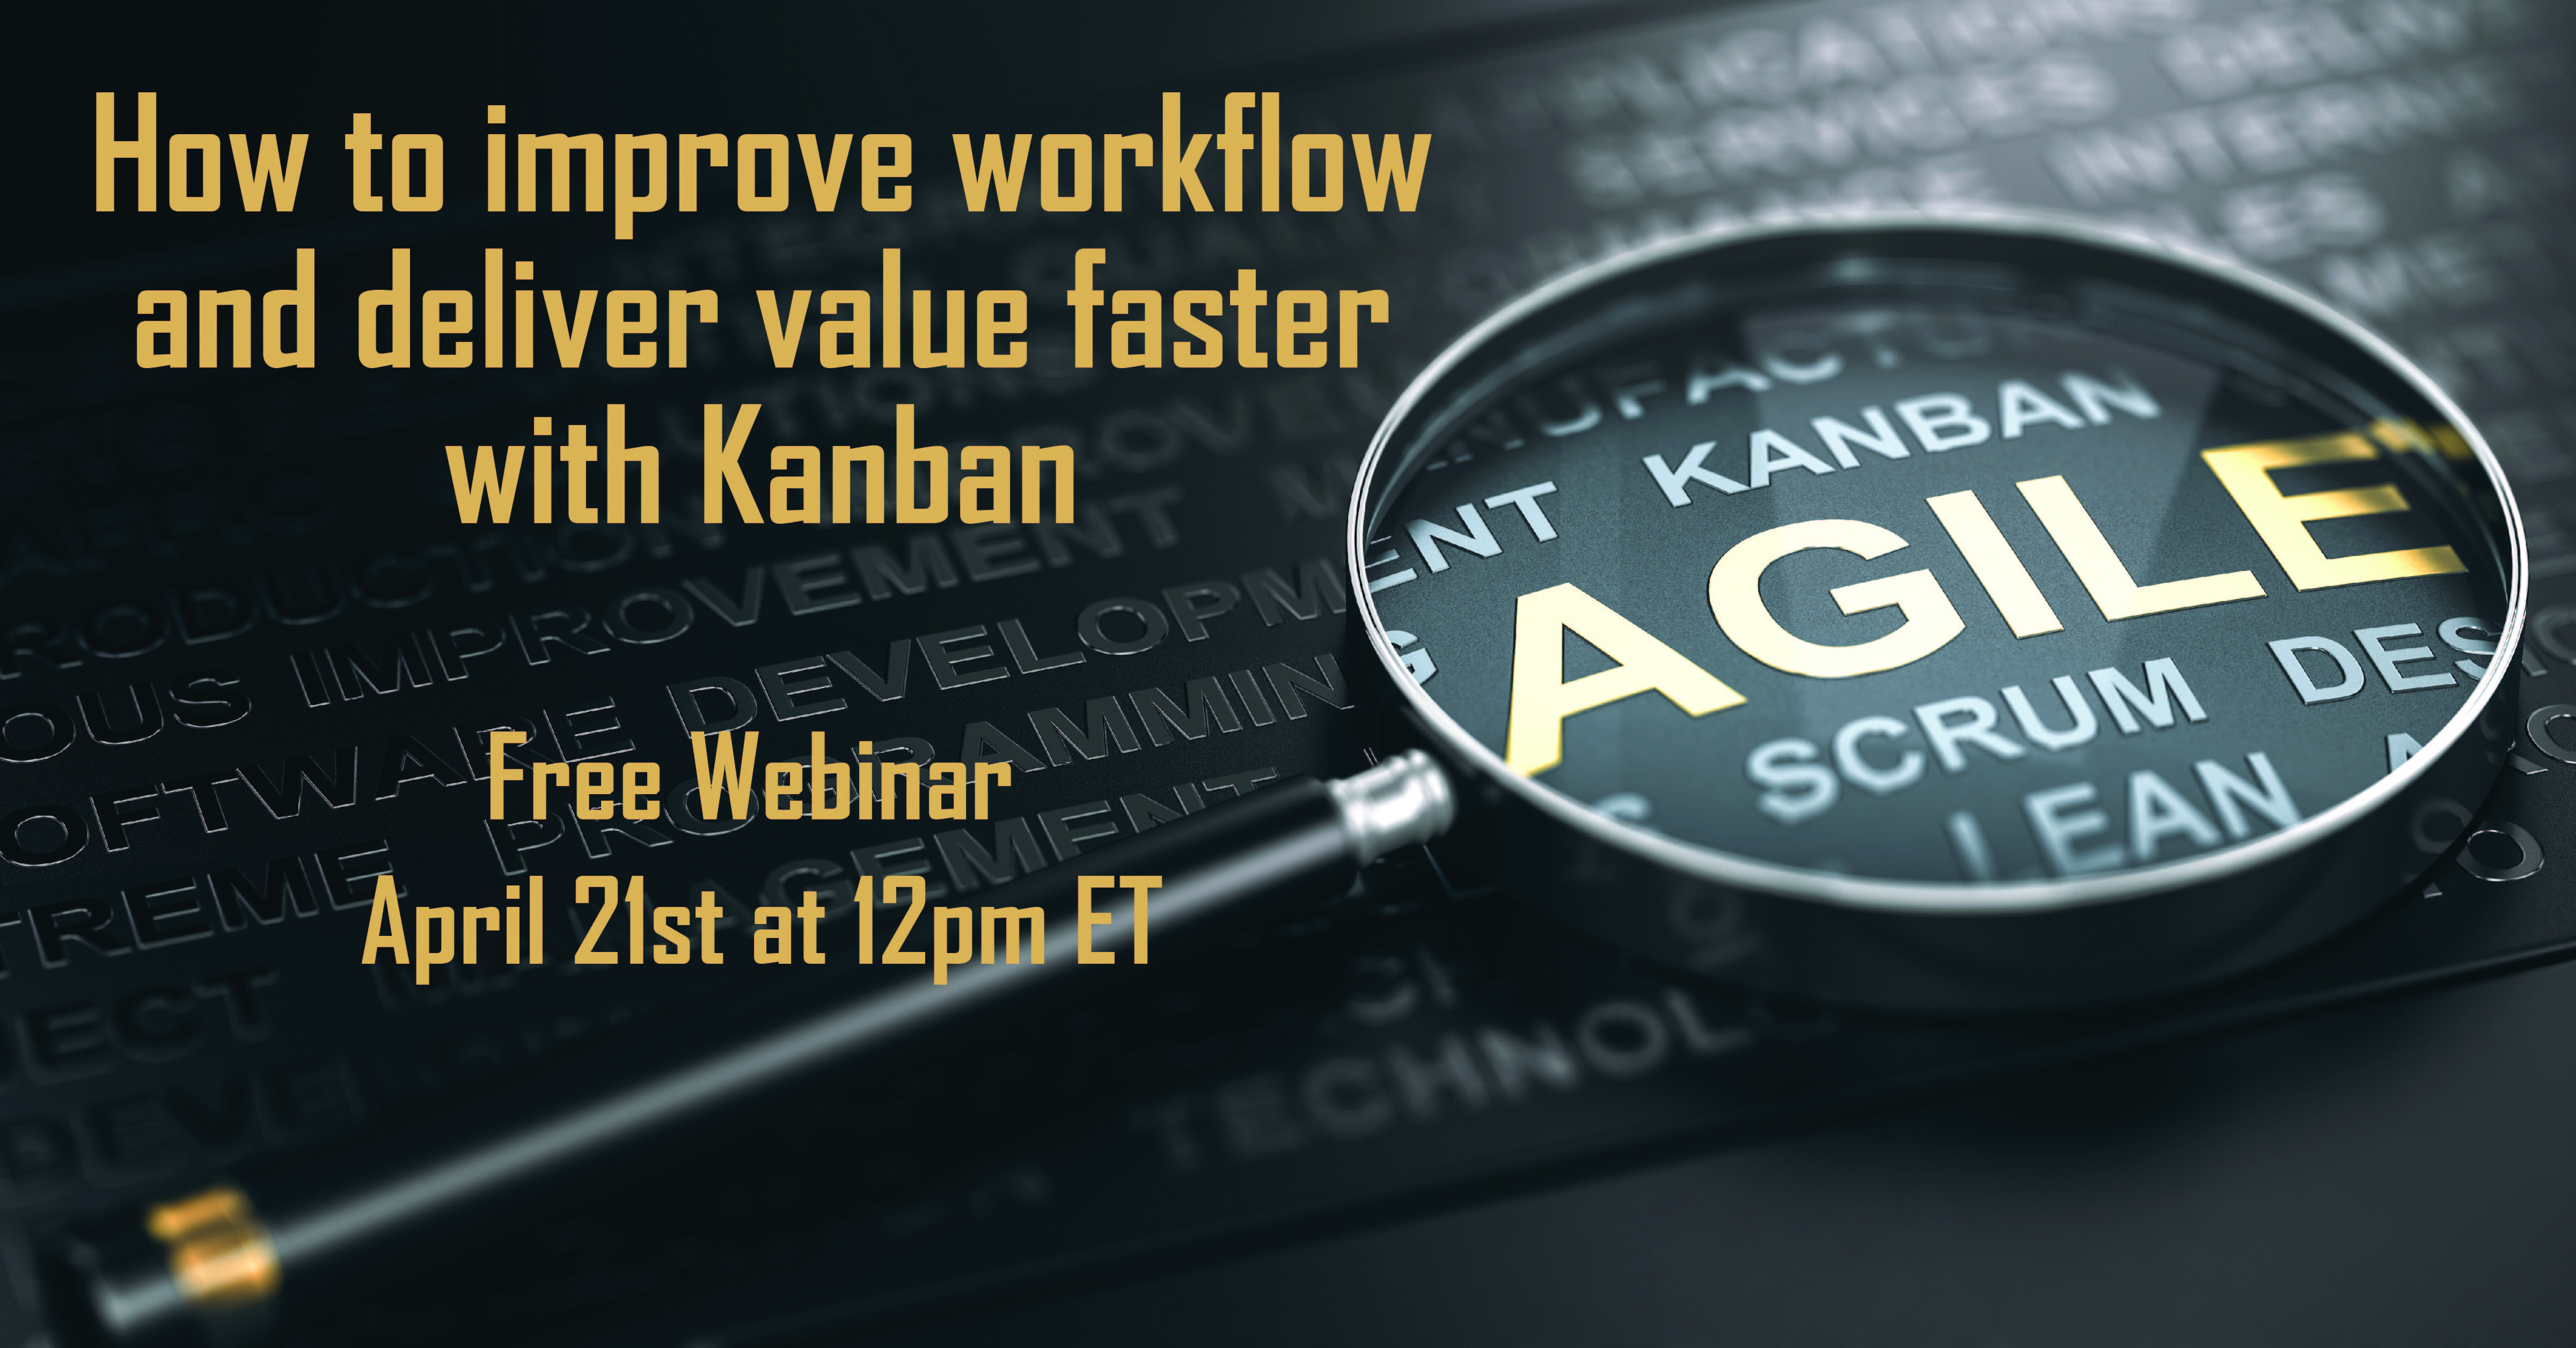 How to improve workflow and deliver value faster with Kanban